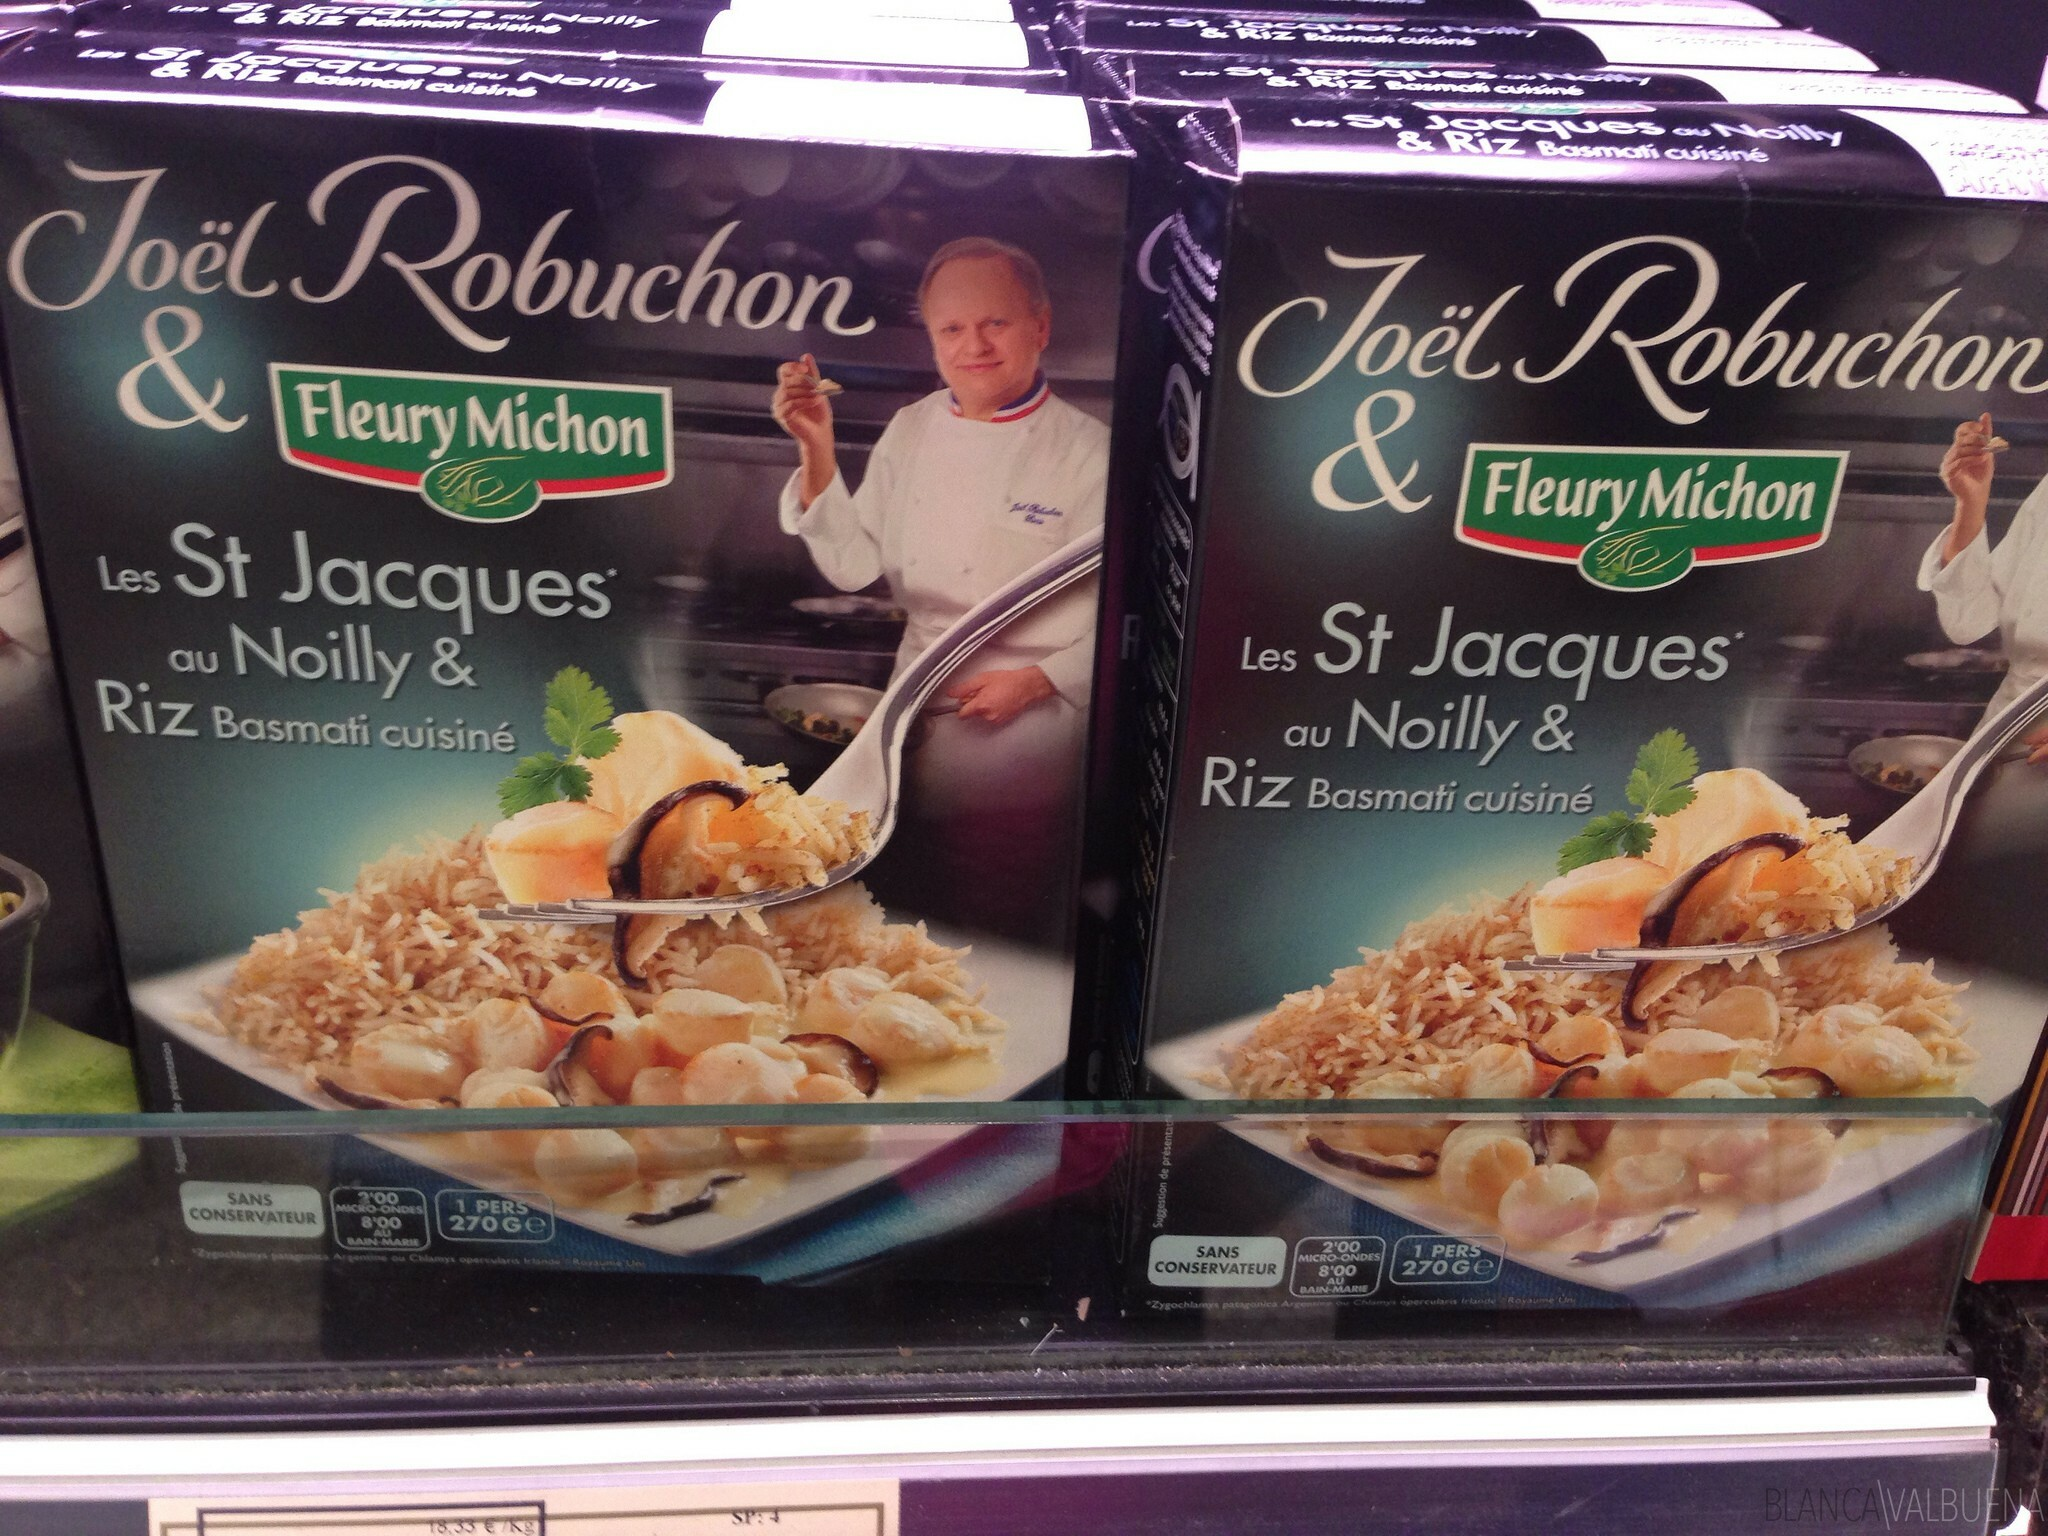 Joel Robuchon's line of frozen dishes is available at Galeries Lafayette